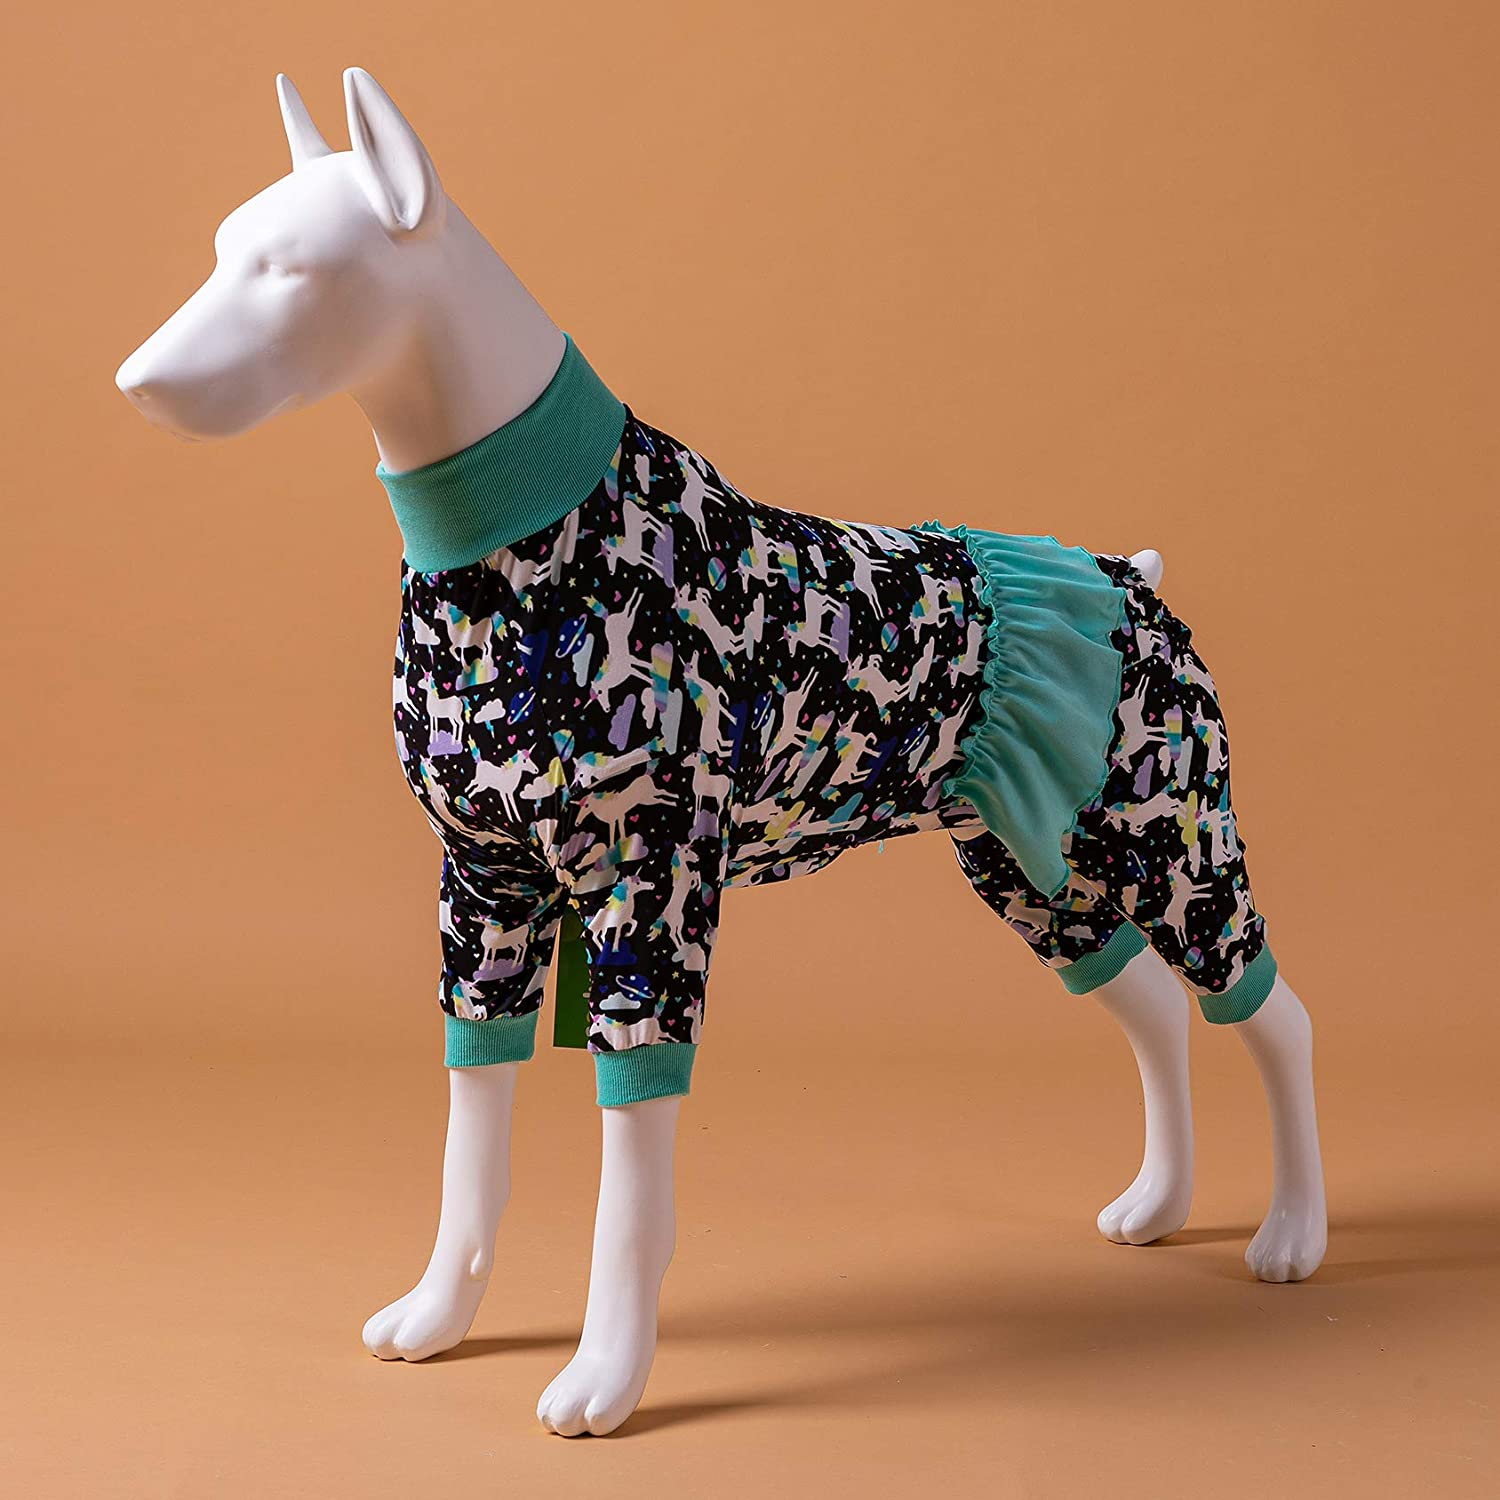 LovinPet Dog Unicorn Pajamas Dog Clothes Post Surgery Recovery for Pitbull Labrador Doberman Boxer//Unicorns in Space Black Prints//Lightweight Big Dogs Pullover Full Coverage Large Breed Dog Pjs